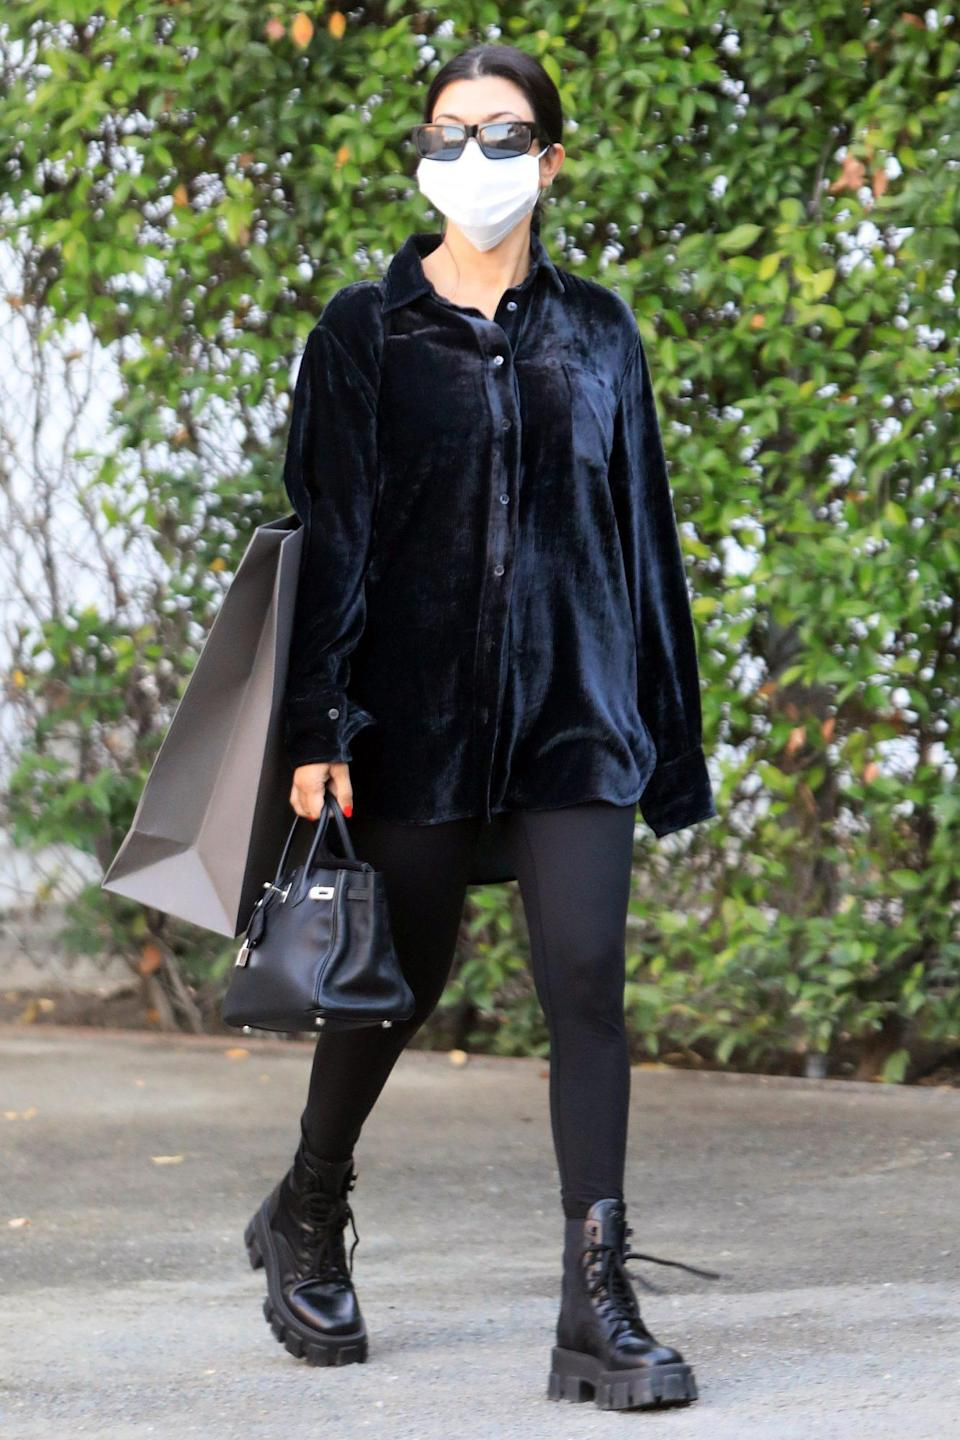 <p>Kourtney Kardashian goes shopping in L.A. on Thursday, wearing all black. </p>